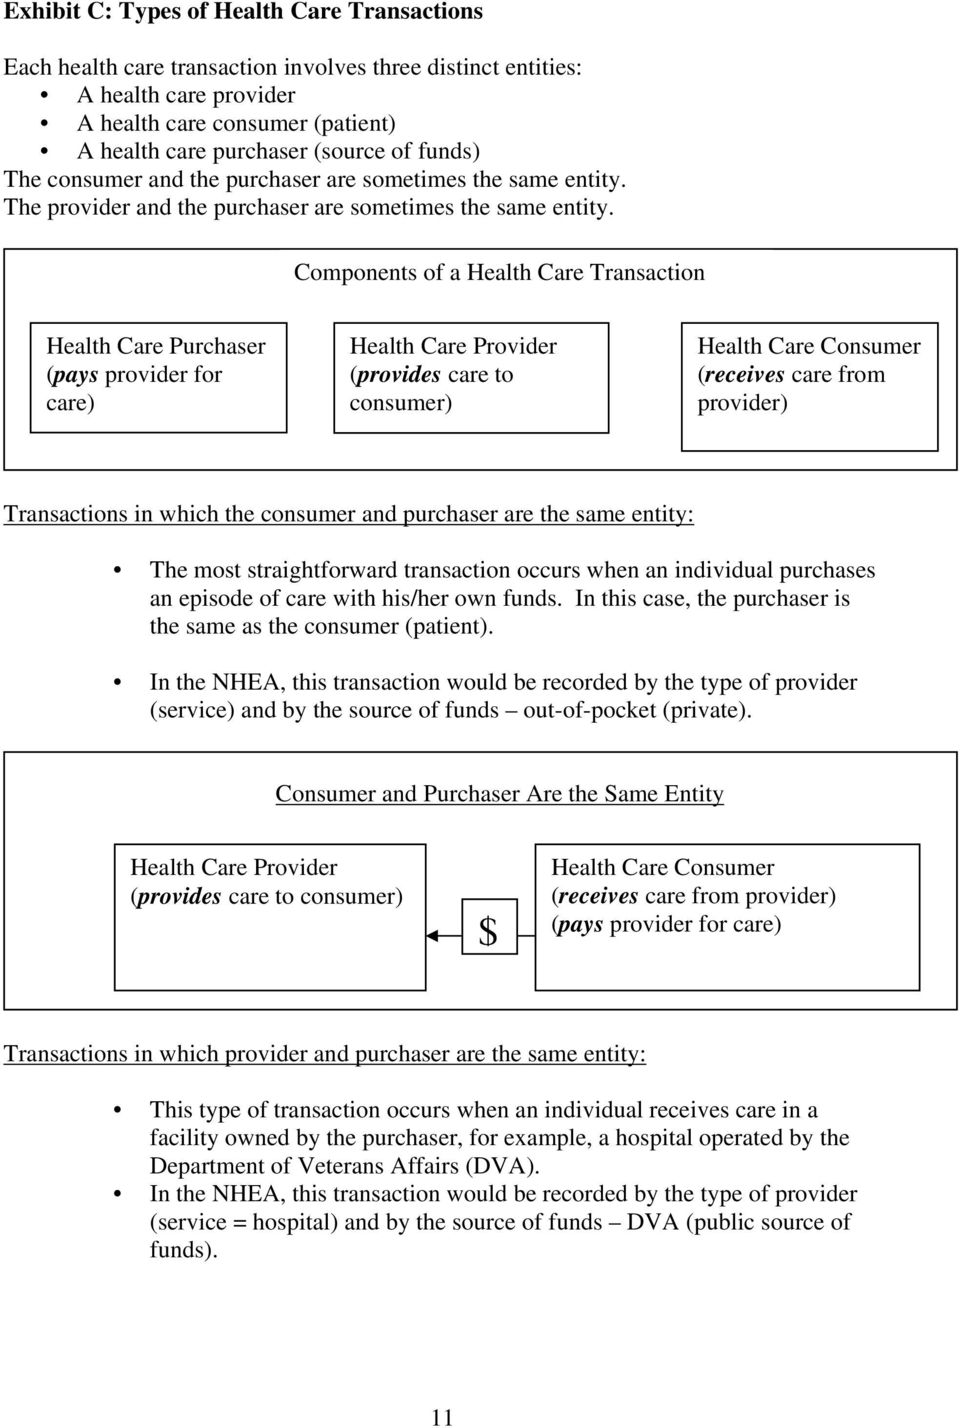 Components of a Health Care Transaction Health Care Purchaser (pays provider for care) Health Care Provider (provides care to consumer) Health Care Consumer (receives care from provider) Transactions